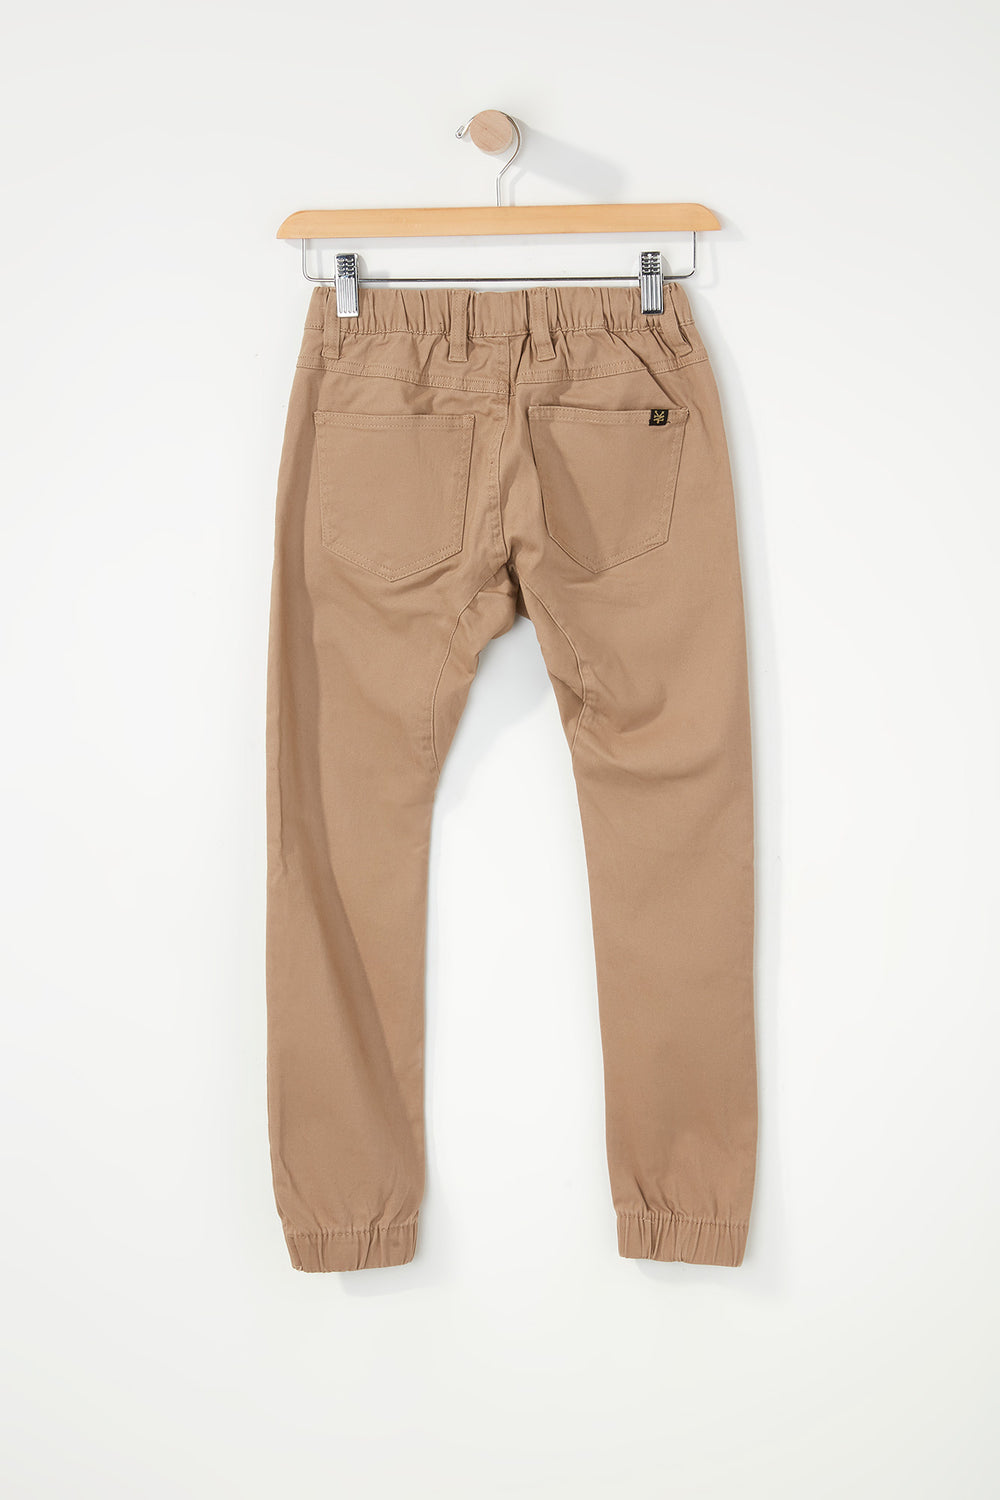 Zoo York Boys 5-Pocket Jogger Sand